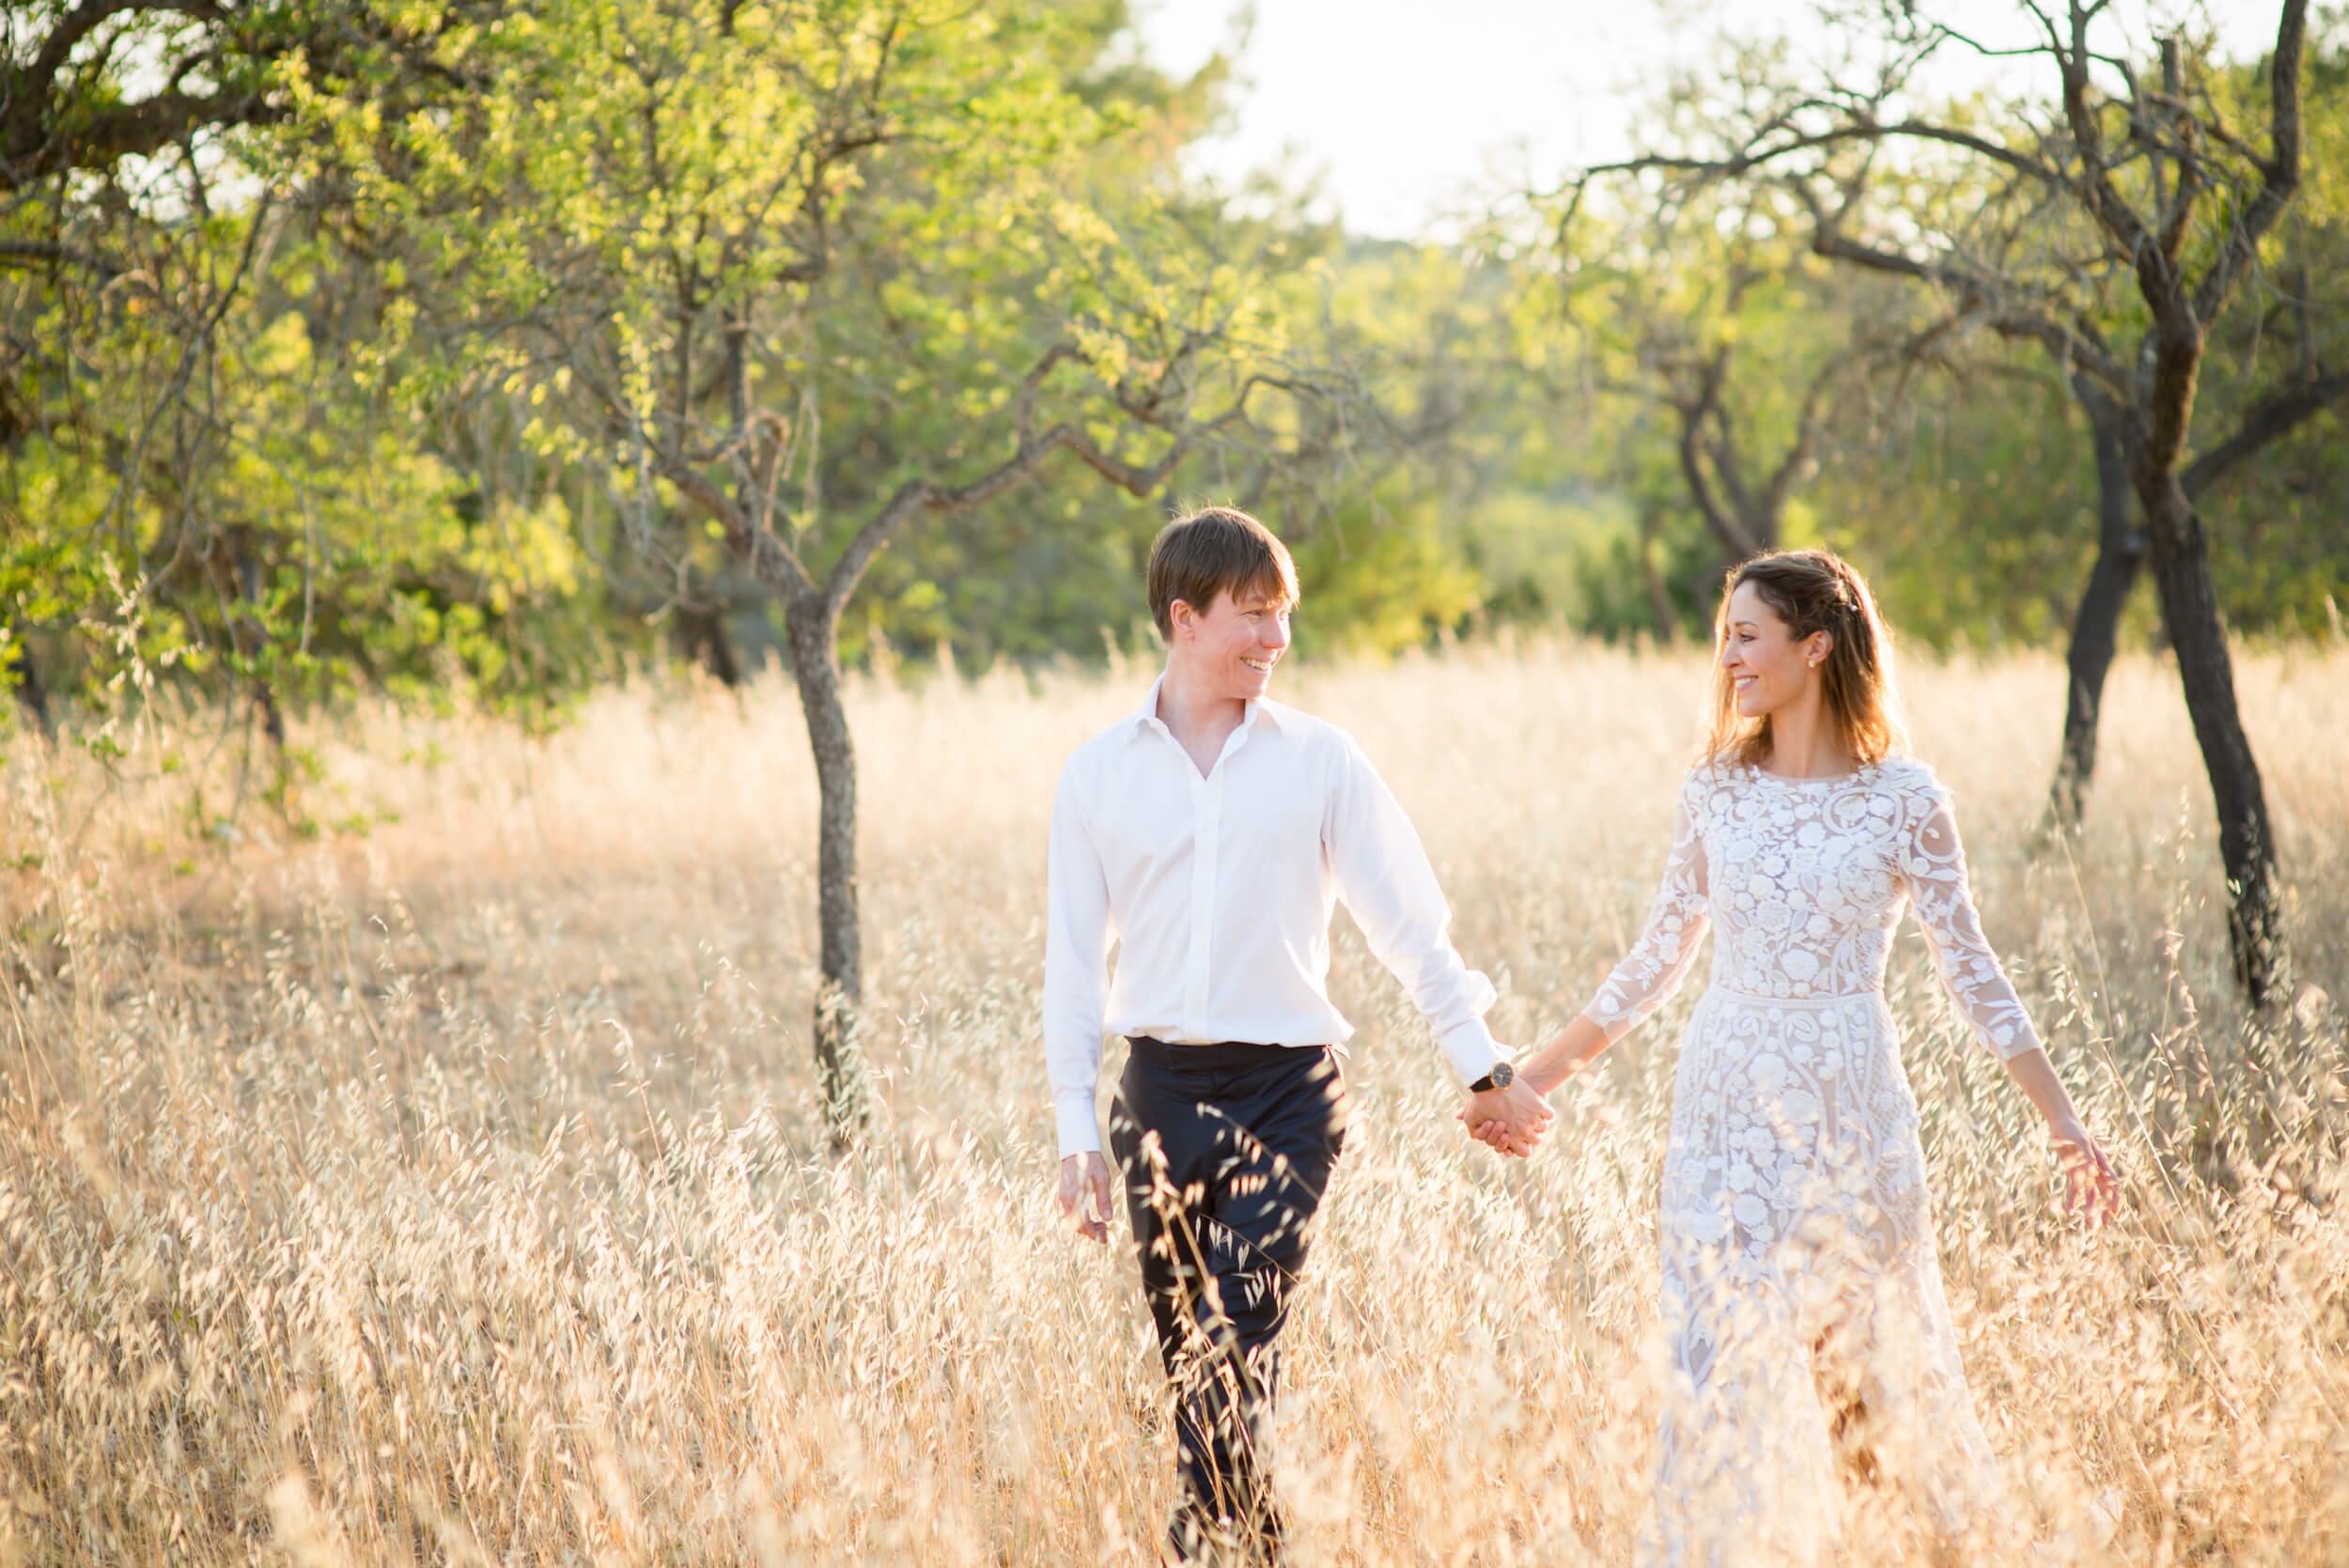 golden hour walk field spring grass bride groom love hermoine de paula